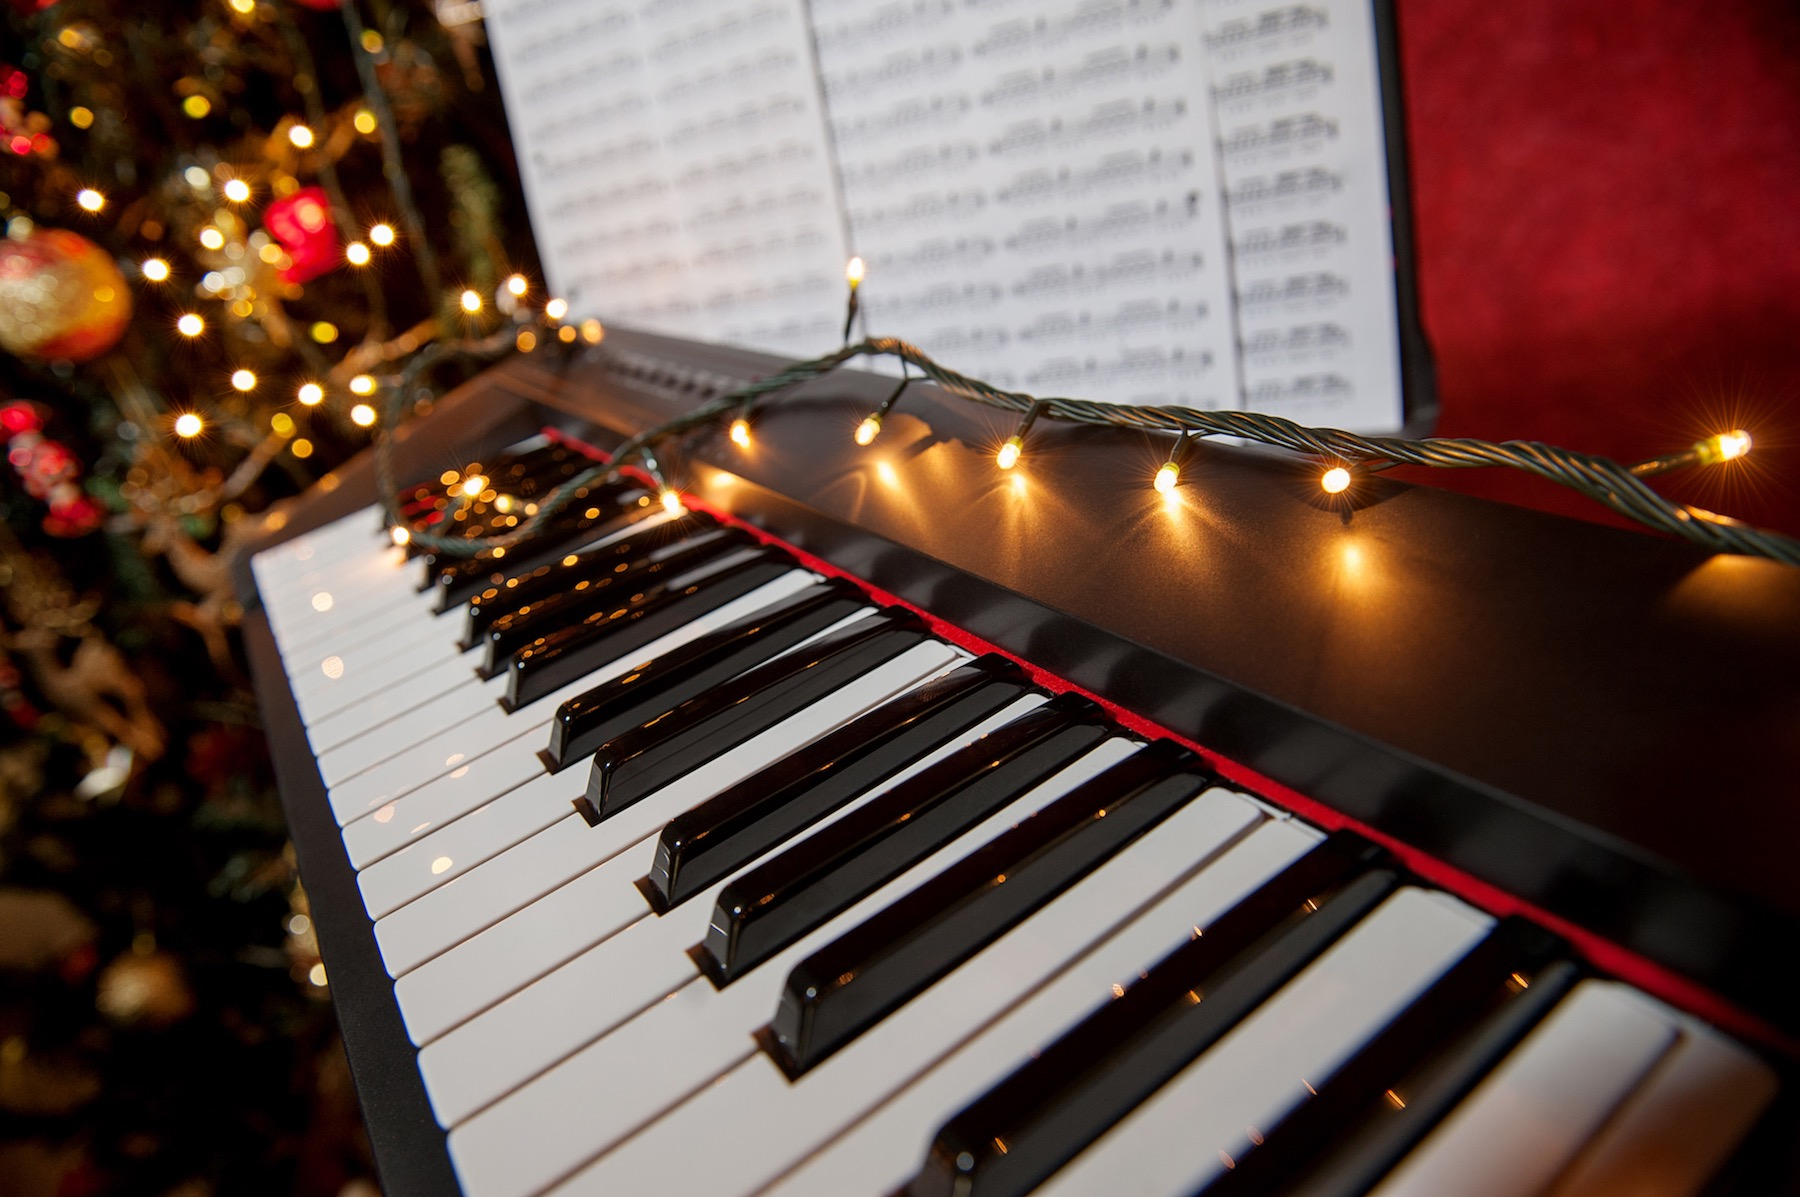 A piano with holiday lights running along the keys.